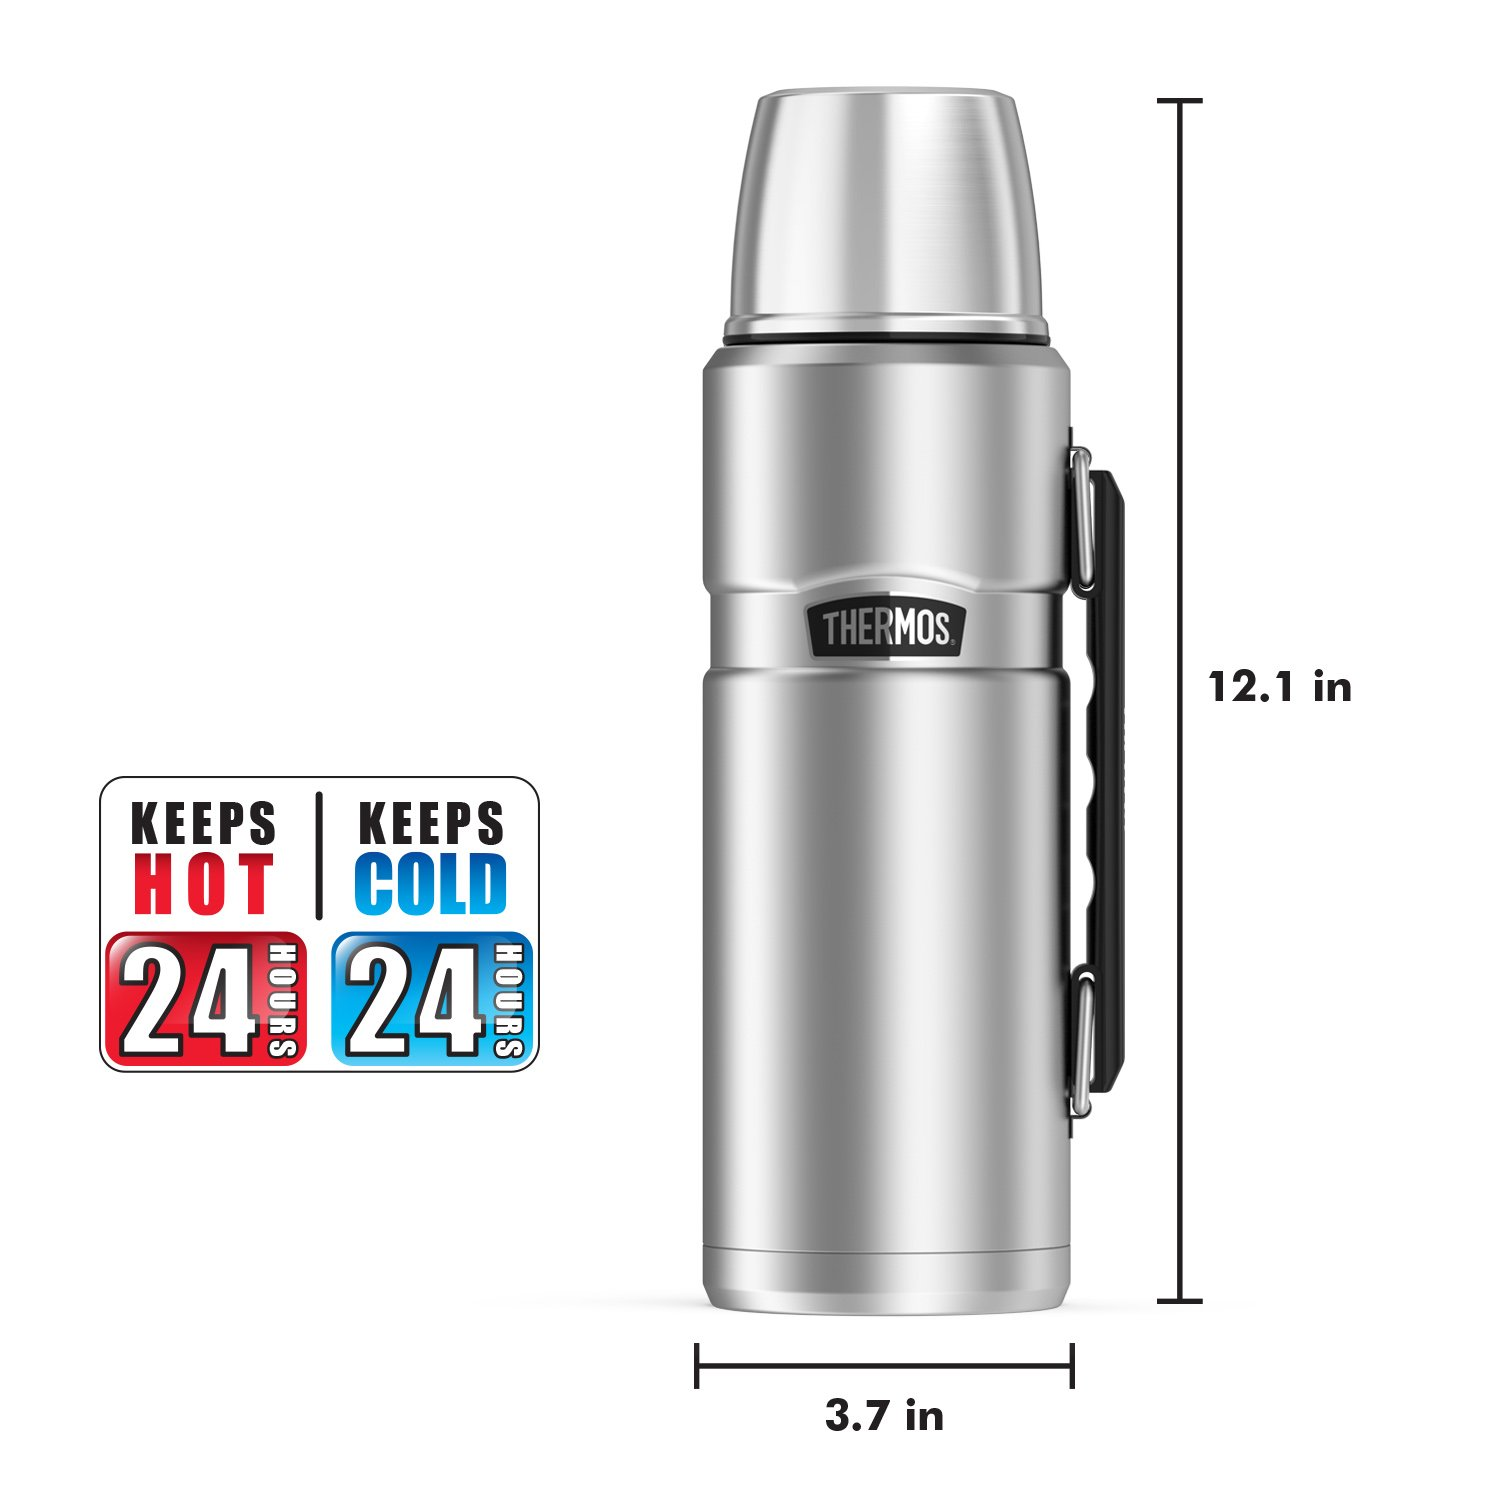 Thermos Stainless King 40 Ounce Beverage Bottle, Stainless Steel by Thermos (Image #5)